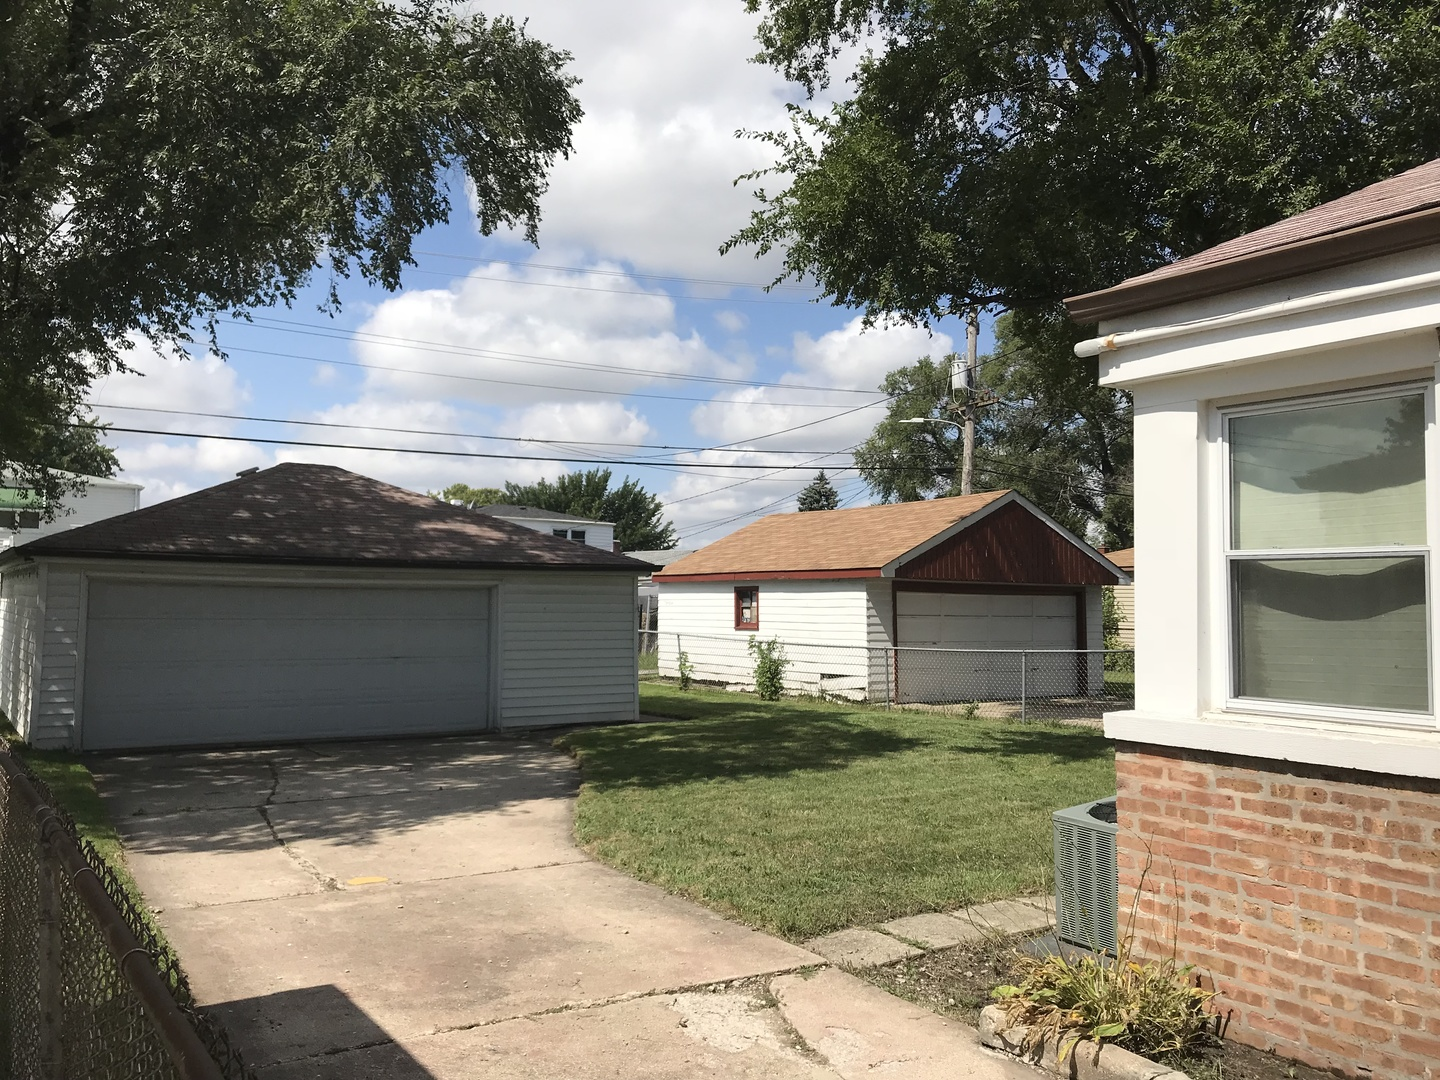 12610 South Bishop, Calumet Park, Illinois, 60827